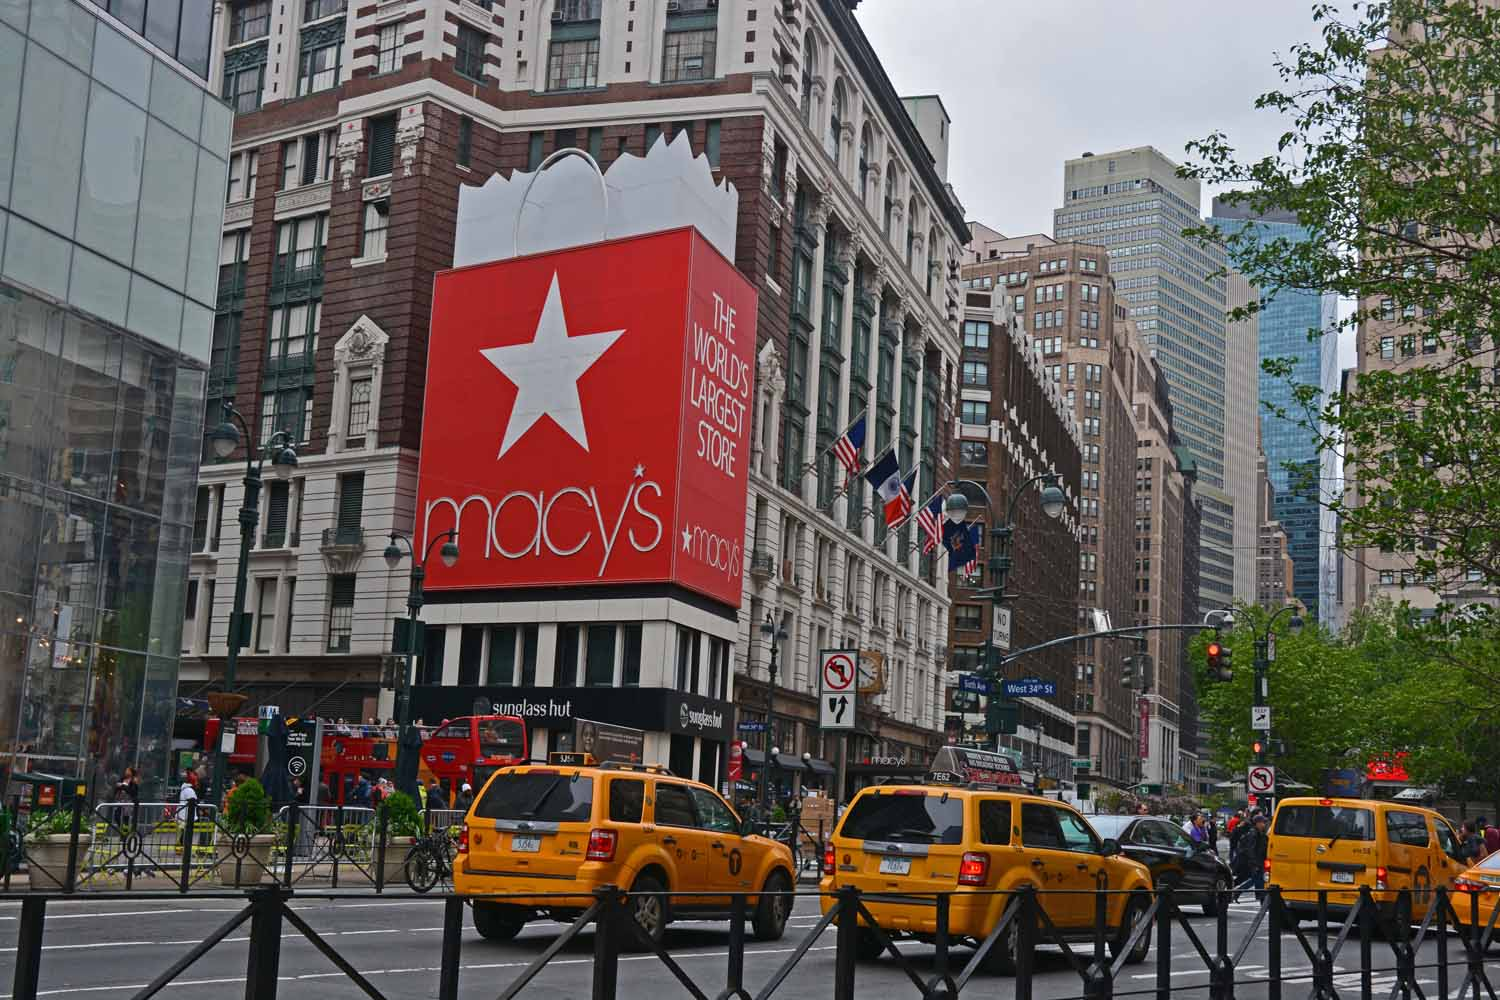 What is a trip to the Big Apple without a stop at Macy's